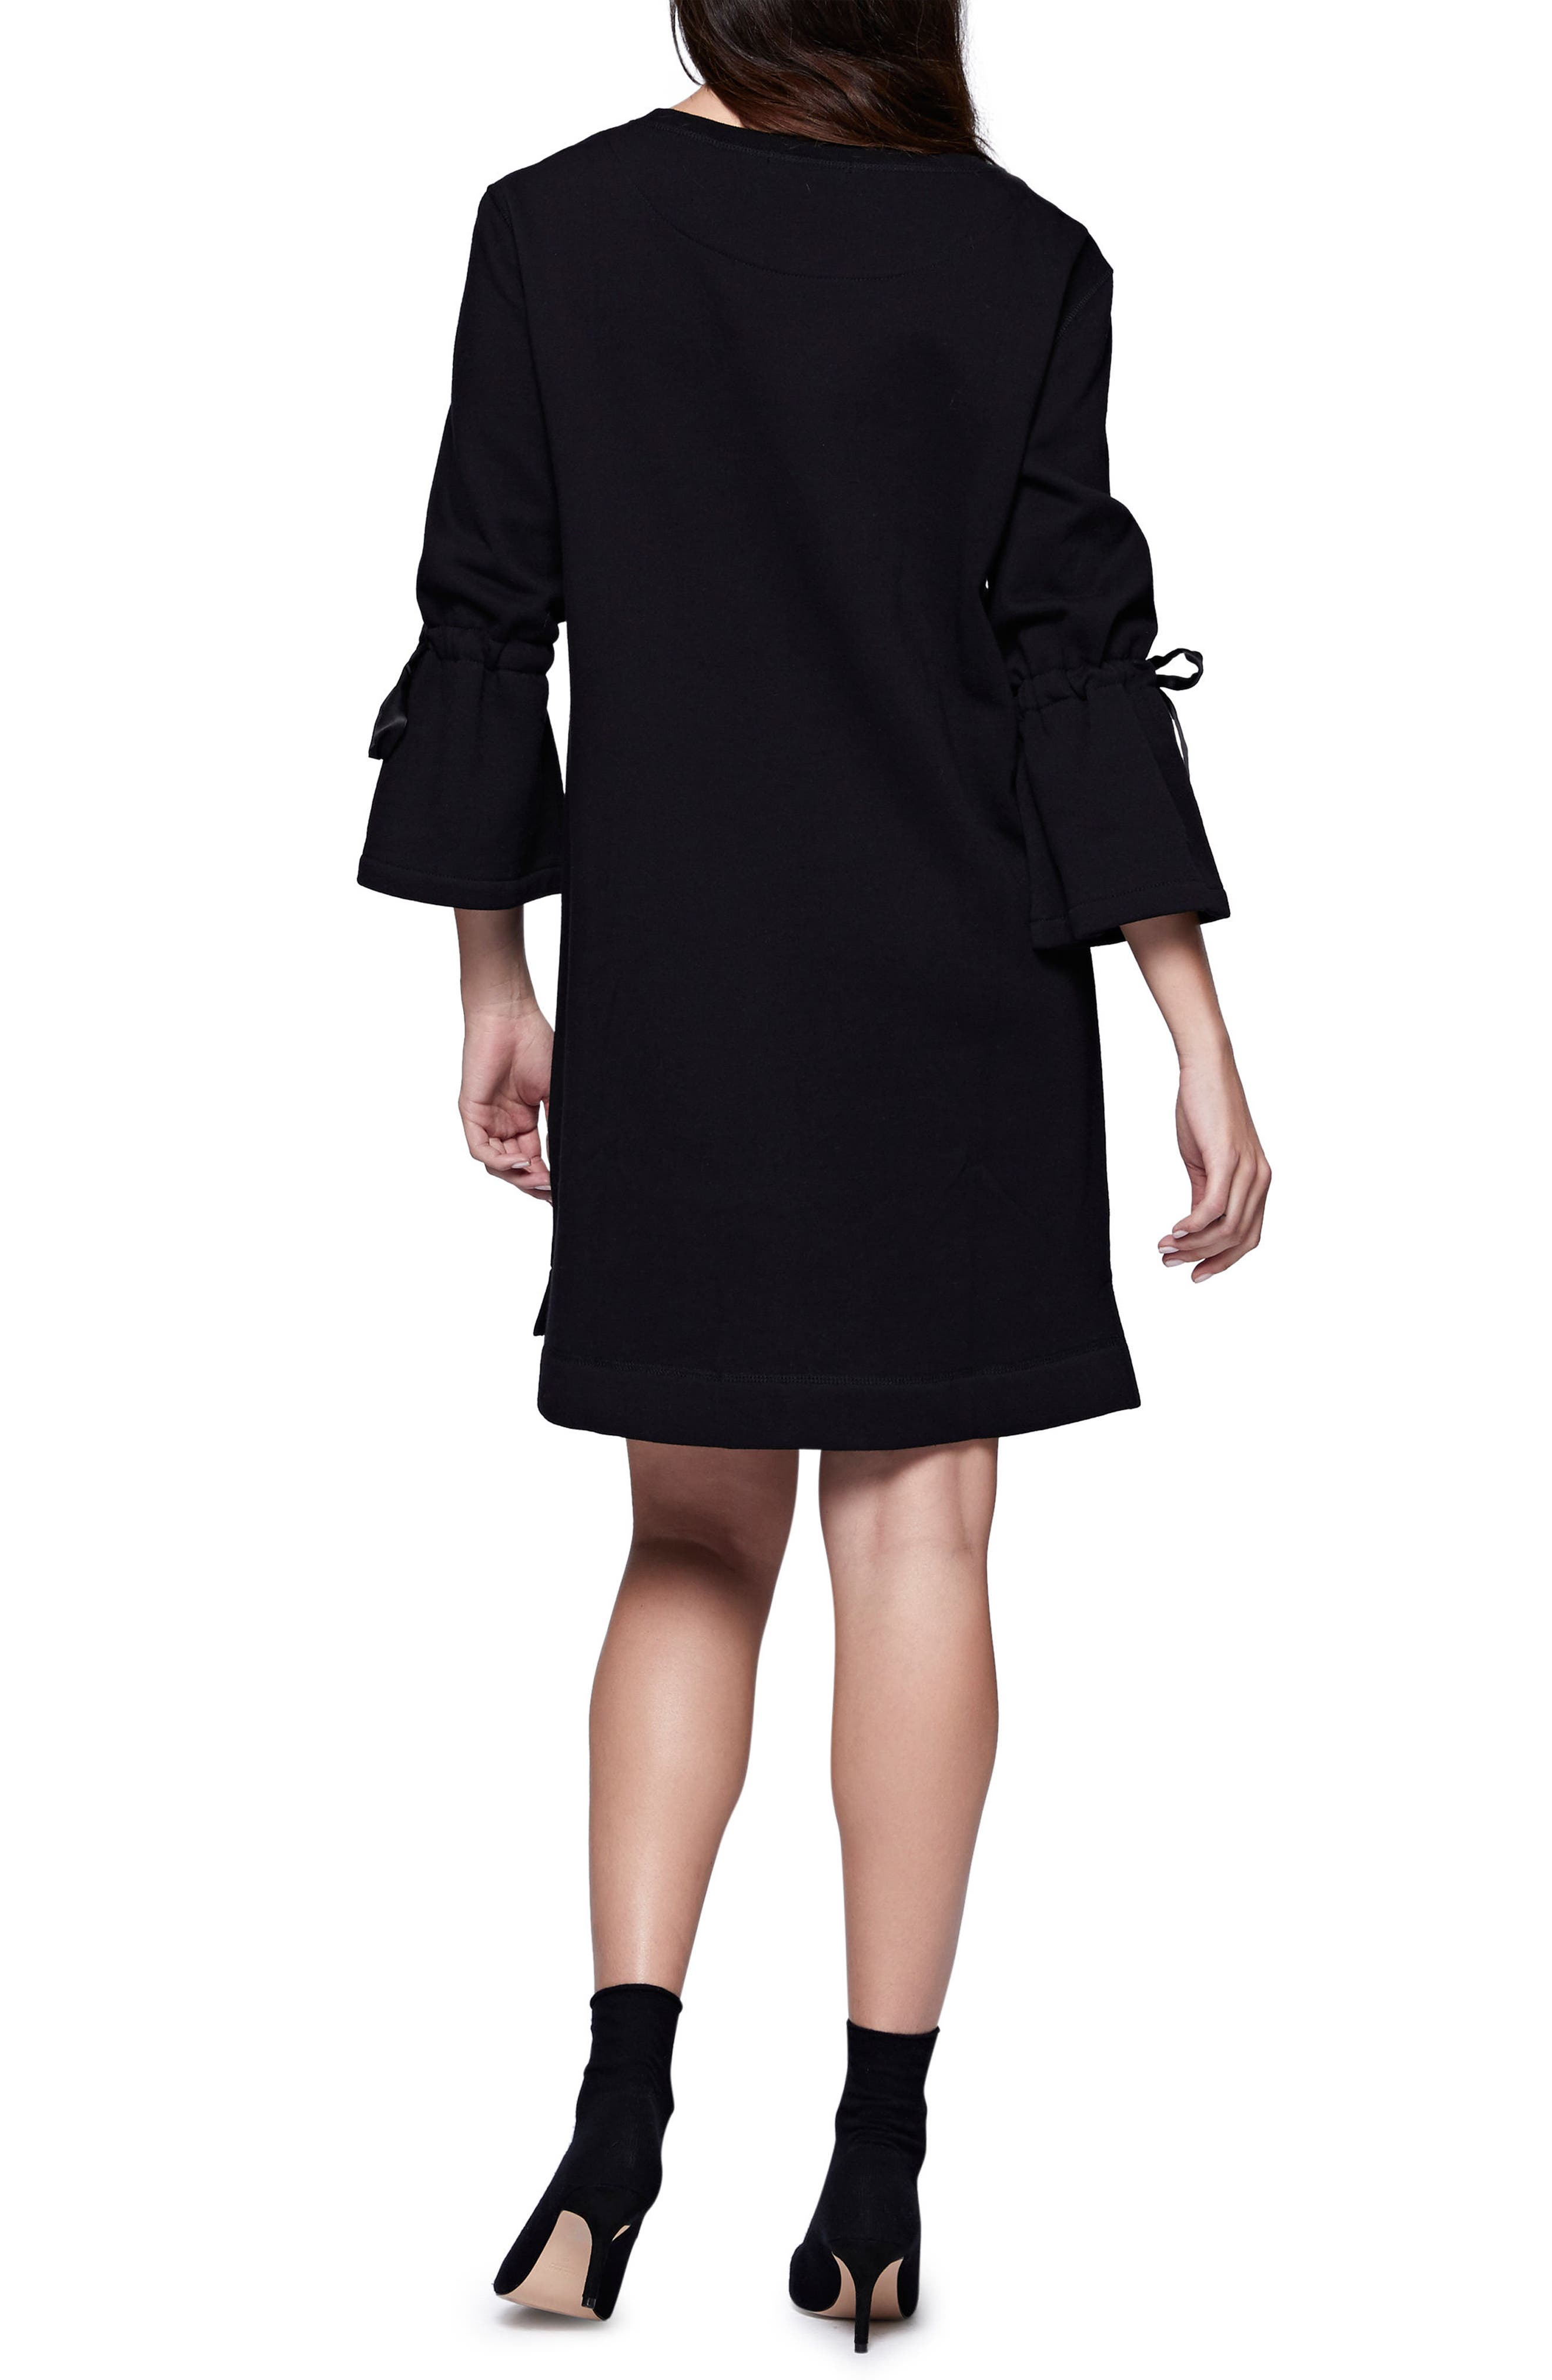 Bell Sleeve Sweatshirt Dress,                             Alternate thumbnail 2, color,                             001